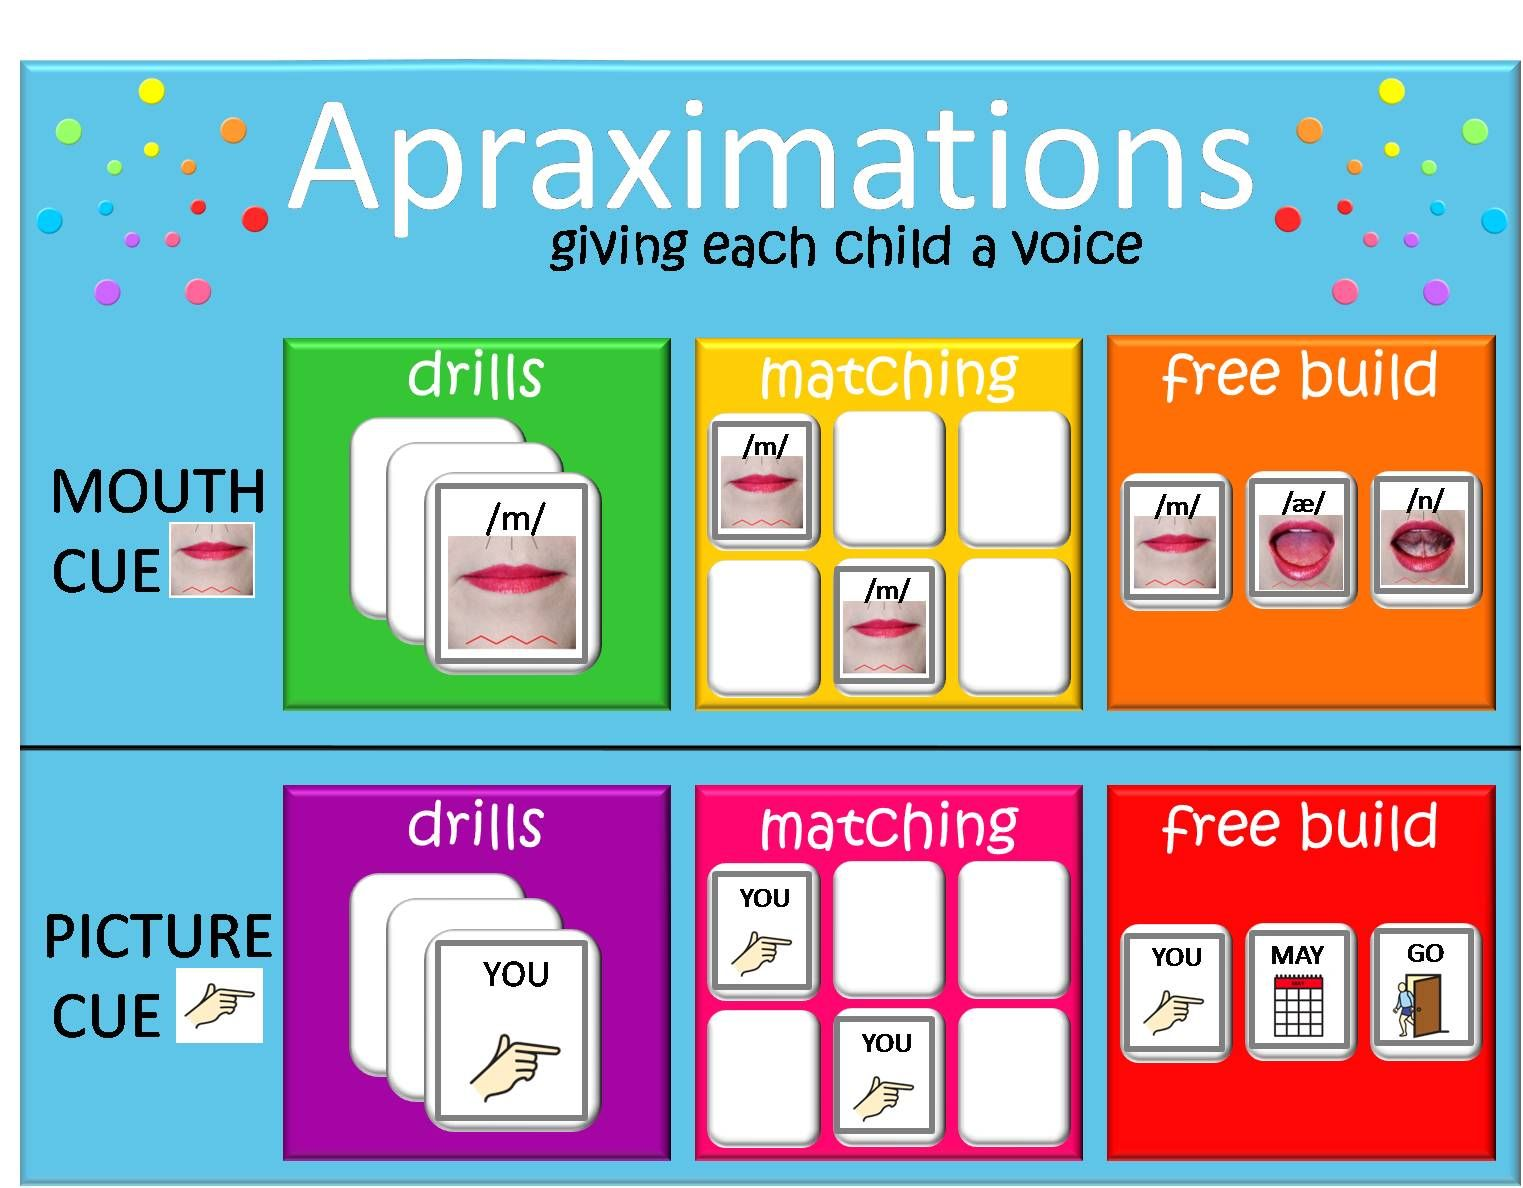 Speech Chick ApraximationsAn App for Treating Children